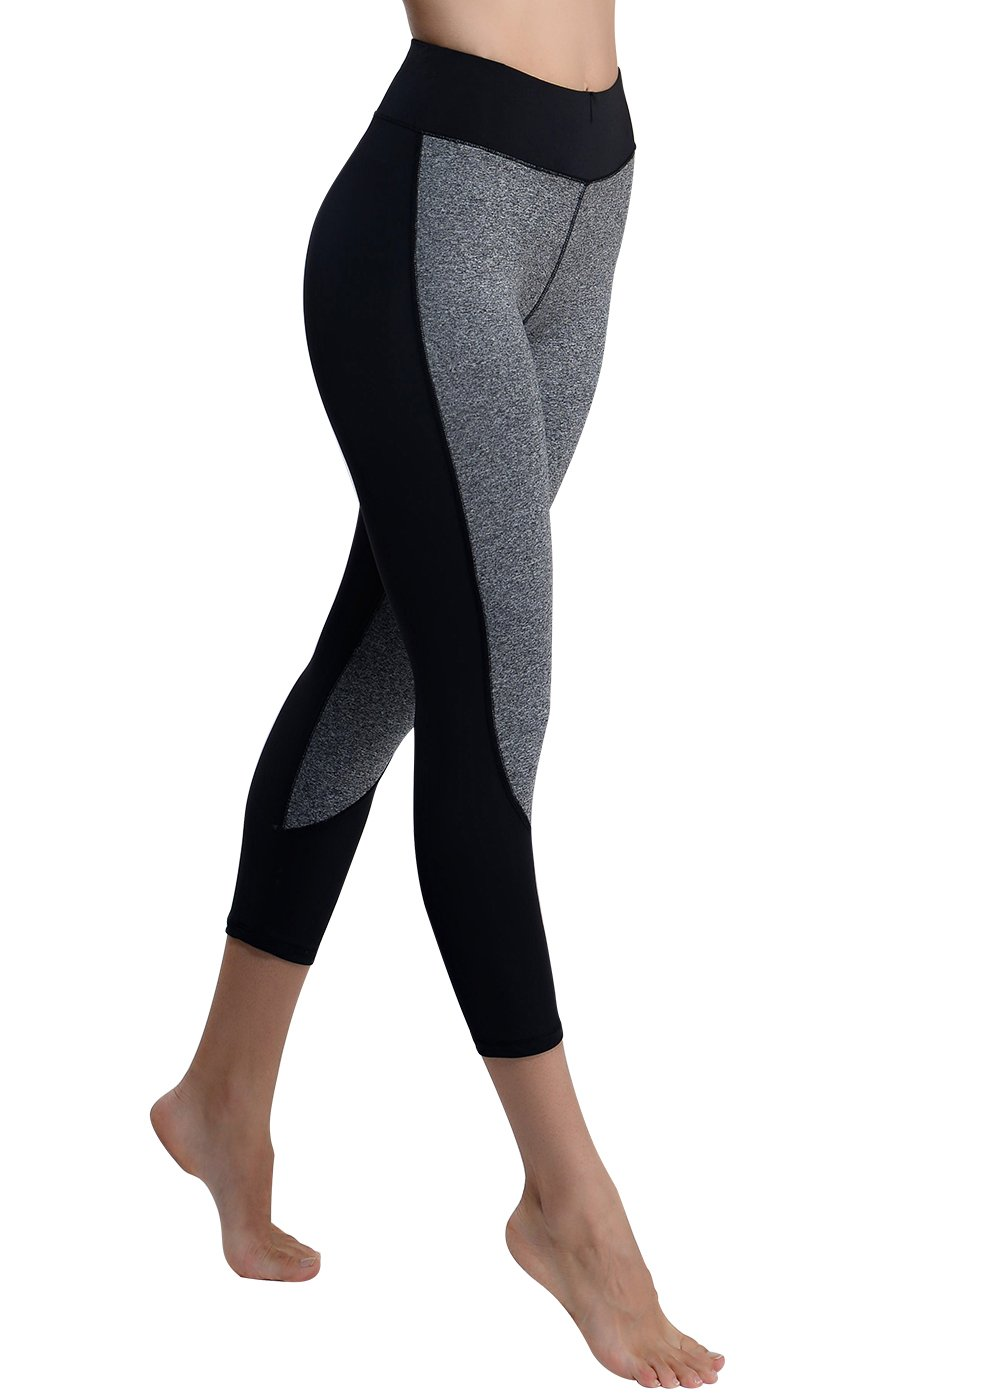 782078149c058 Top 10 wholesale White Sports Leggings - Chinabrands.com